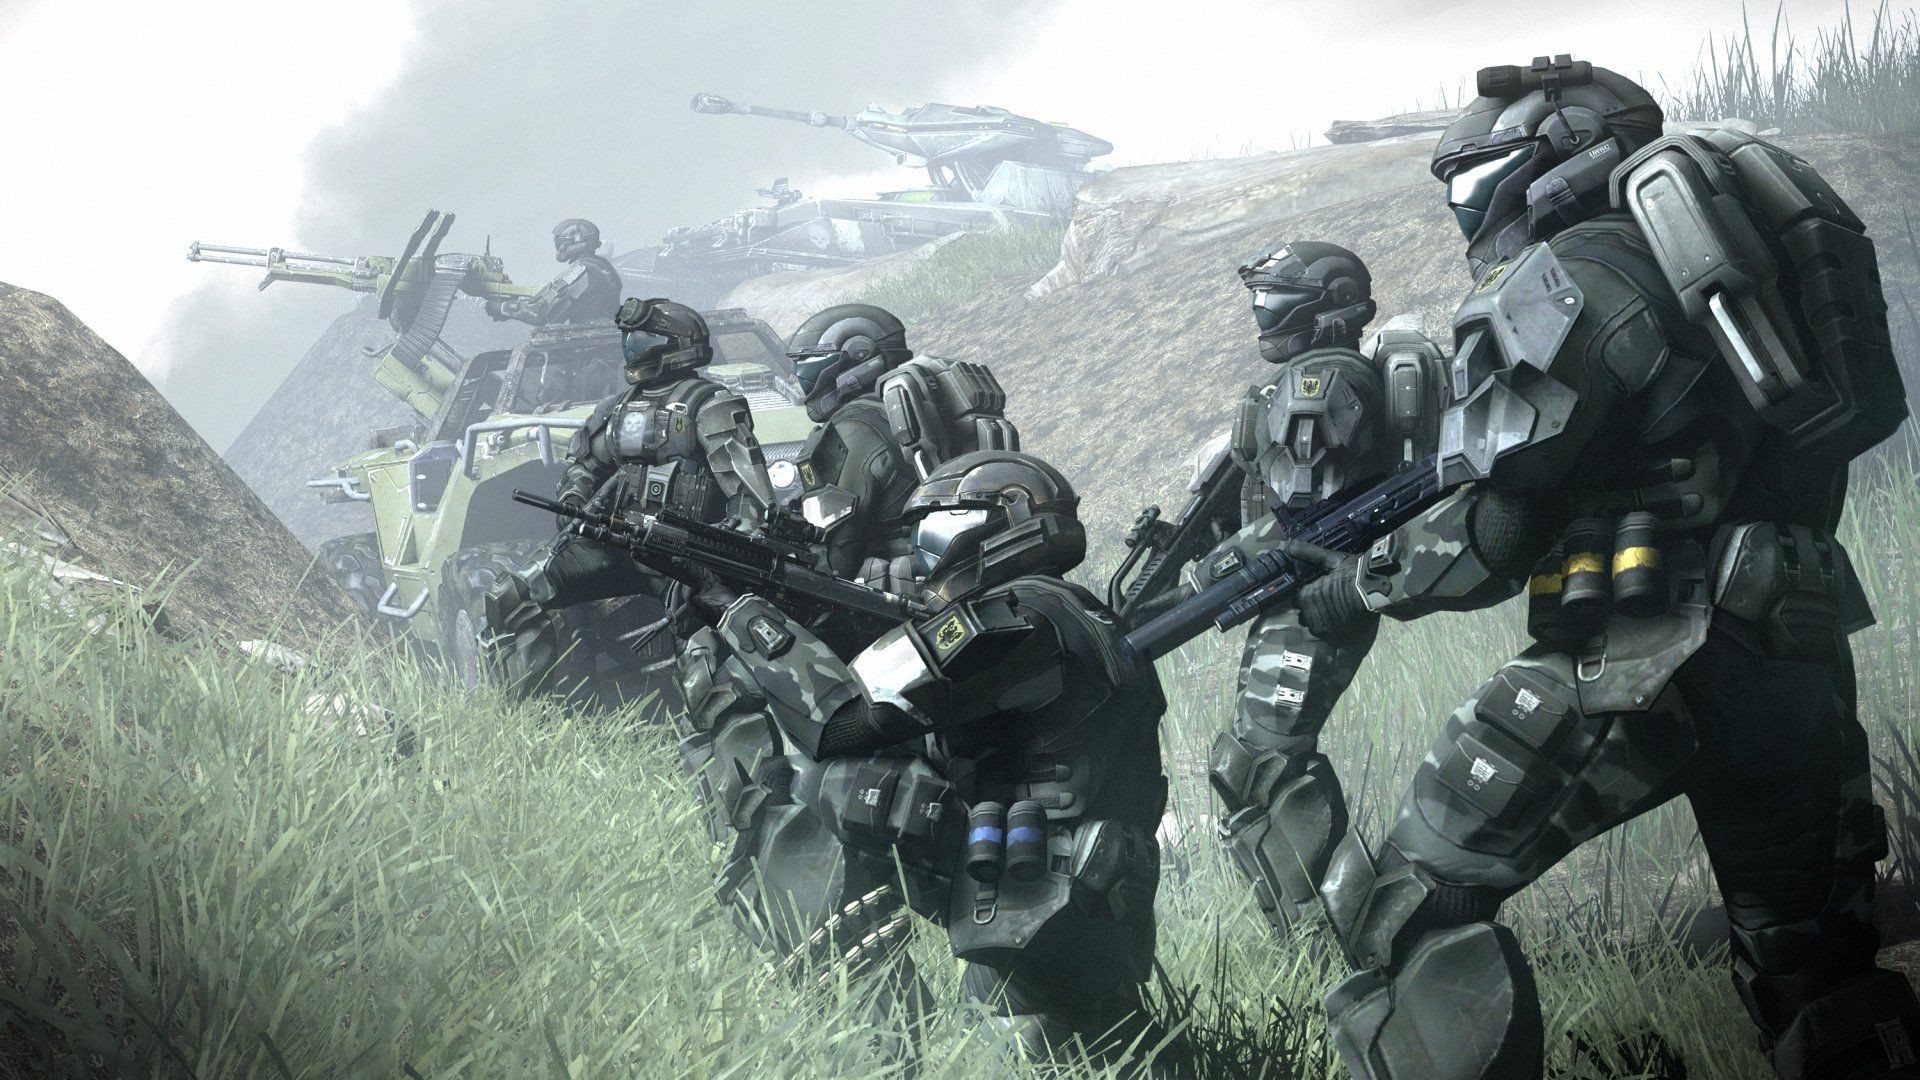 Res: 1920x1080, Video Game Halo 3: ODST Halo Soldier Wallpaper